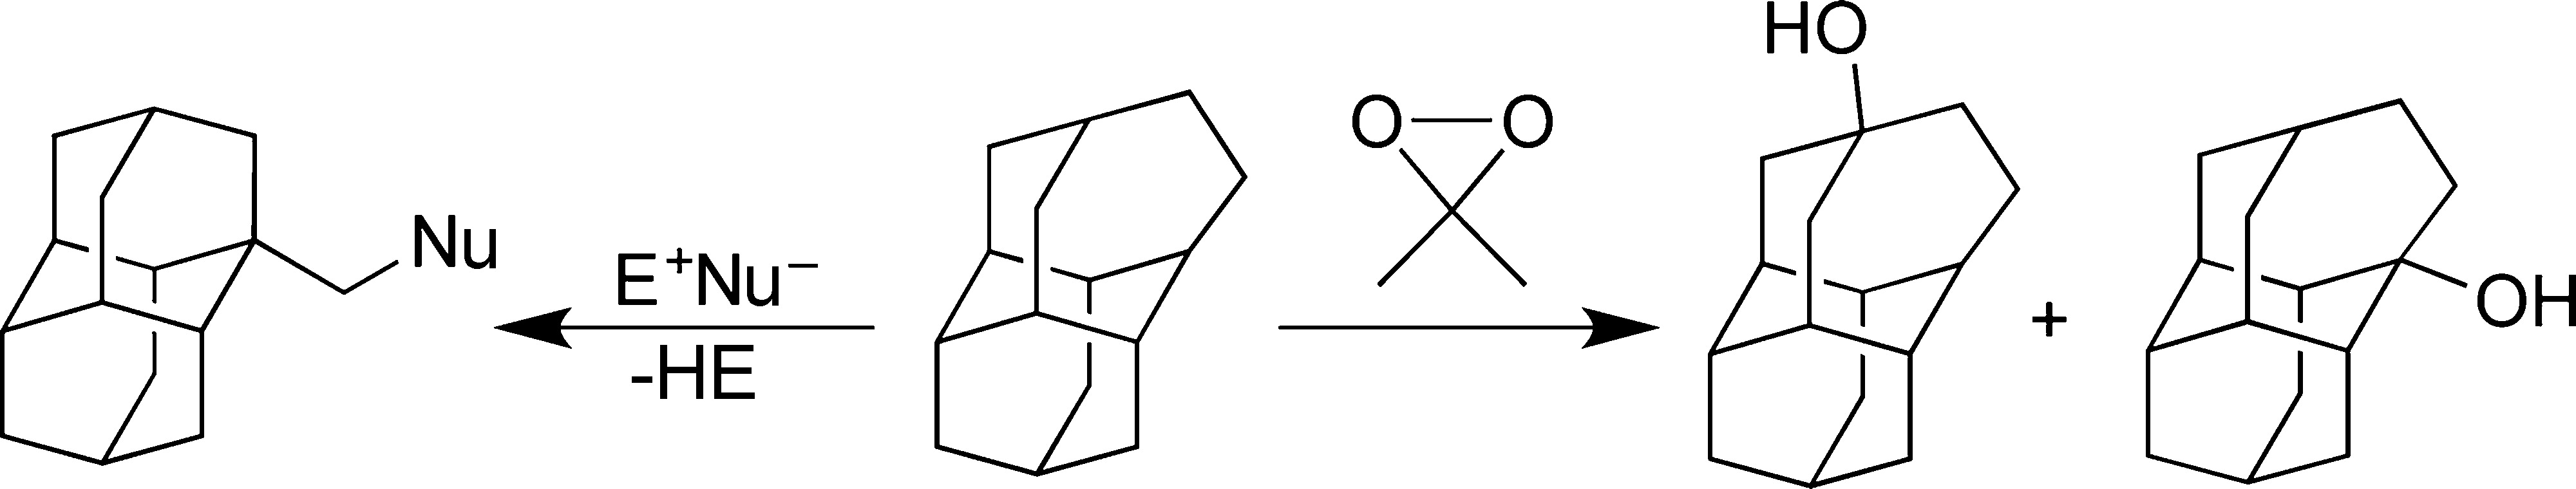 Functionalization of Homodiamantane: Oxygen Insertion Reactions Without Rearrangement with Dimethyldioxirane. Functionalized Nanodiamonds, part 42.